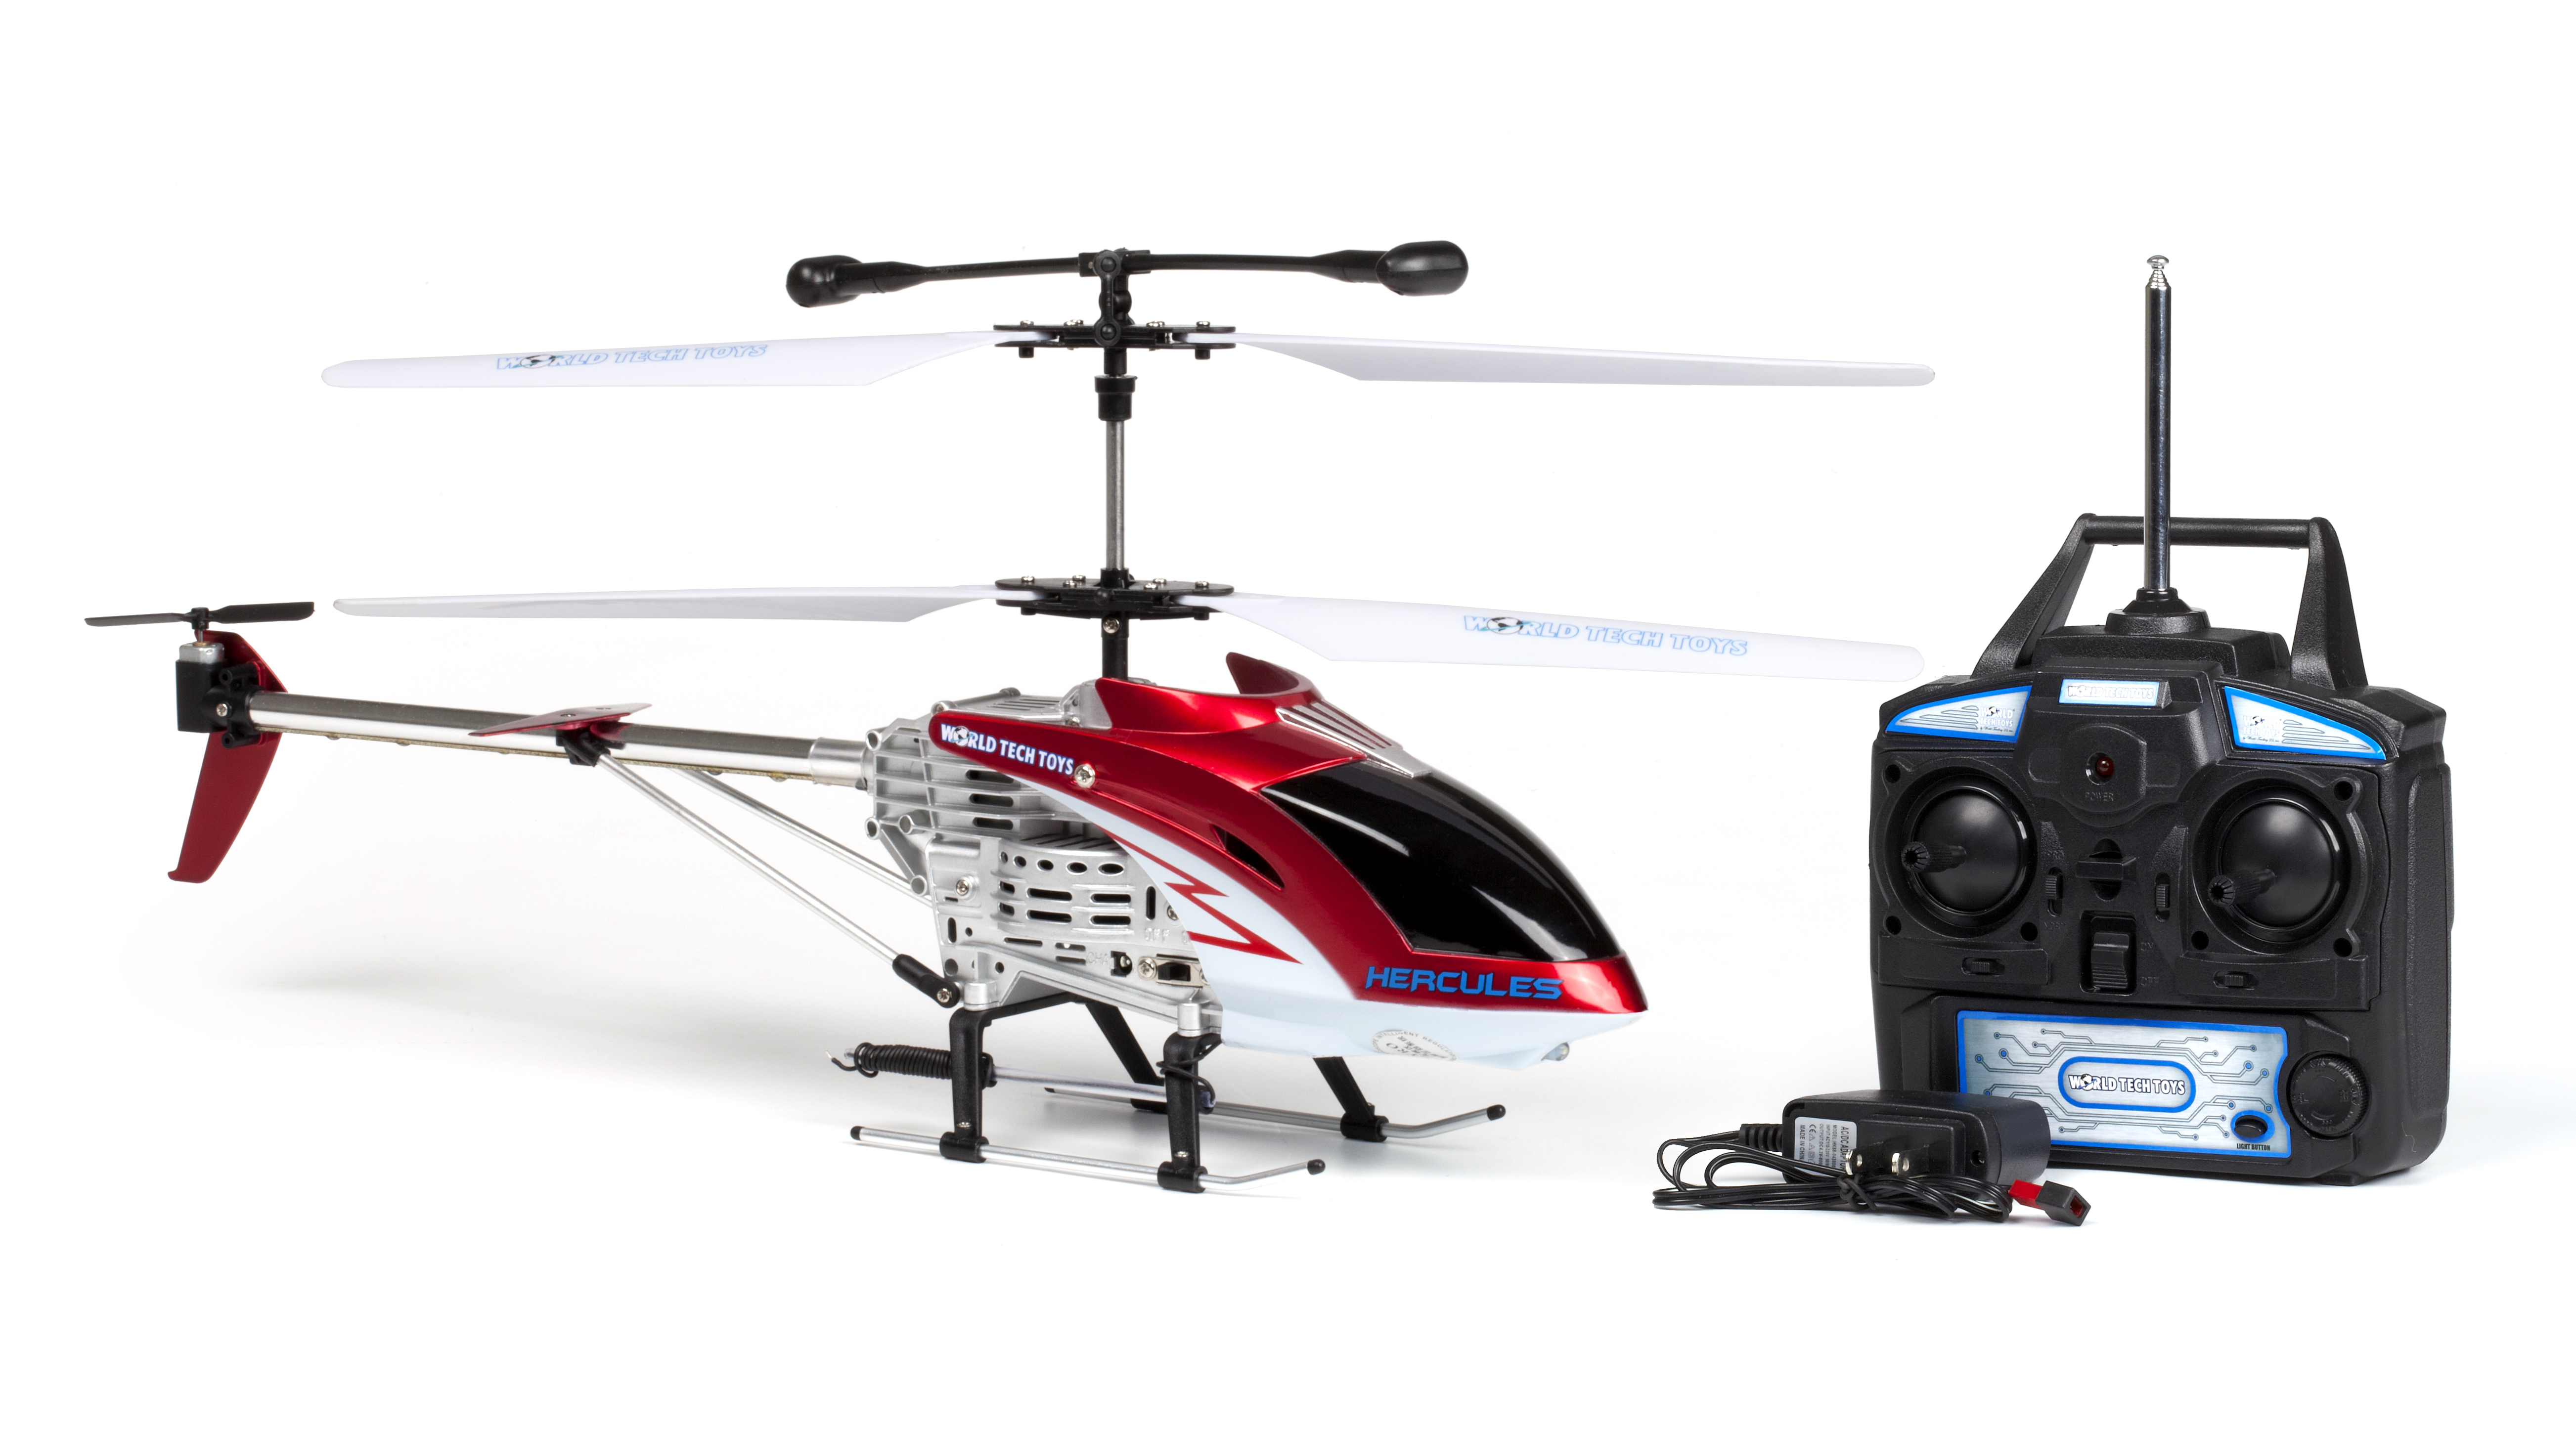 hercules remote control helicopter with Kids Toy Helicopter on Good Morning America Features Unbreakable Helicopters moreover Watch as well Salg9a likewise 965449p besides 7 4v 1500mah Lithium Polymer Battery For T 23 T623 848 R C Helicopter Blue 133338.